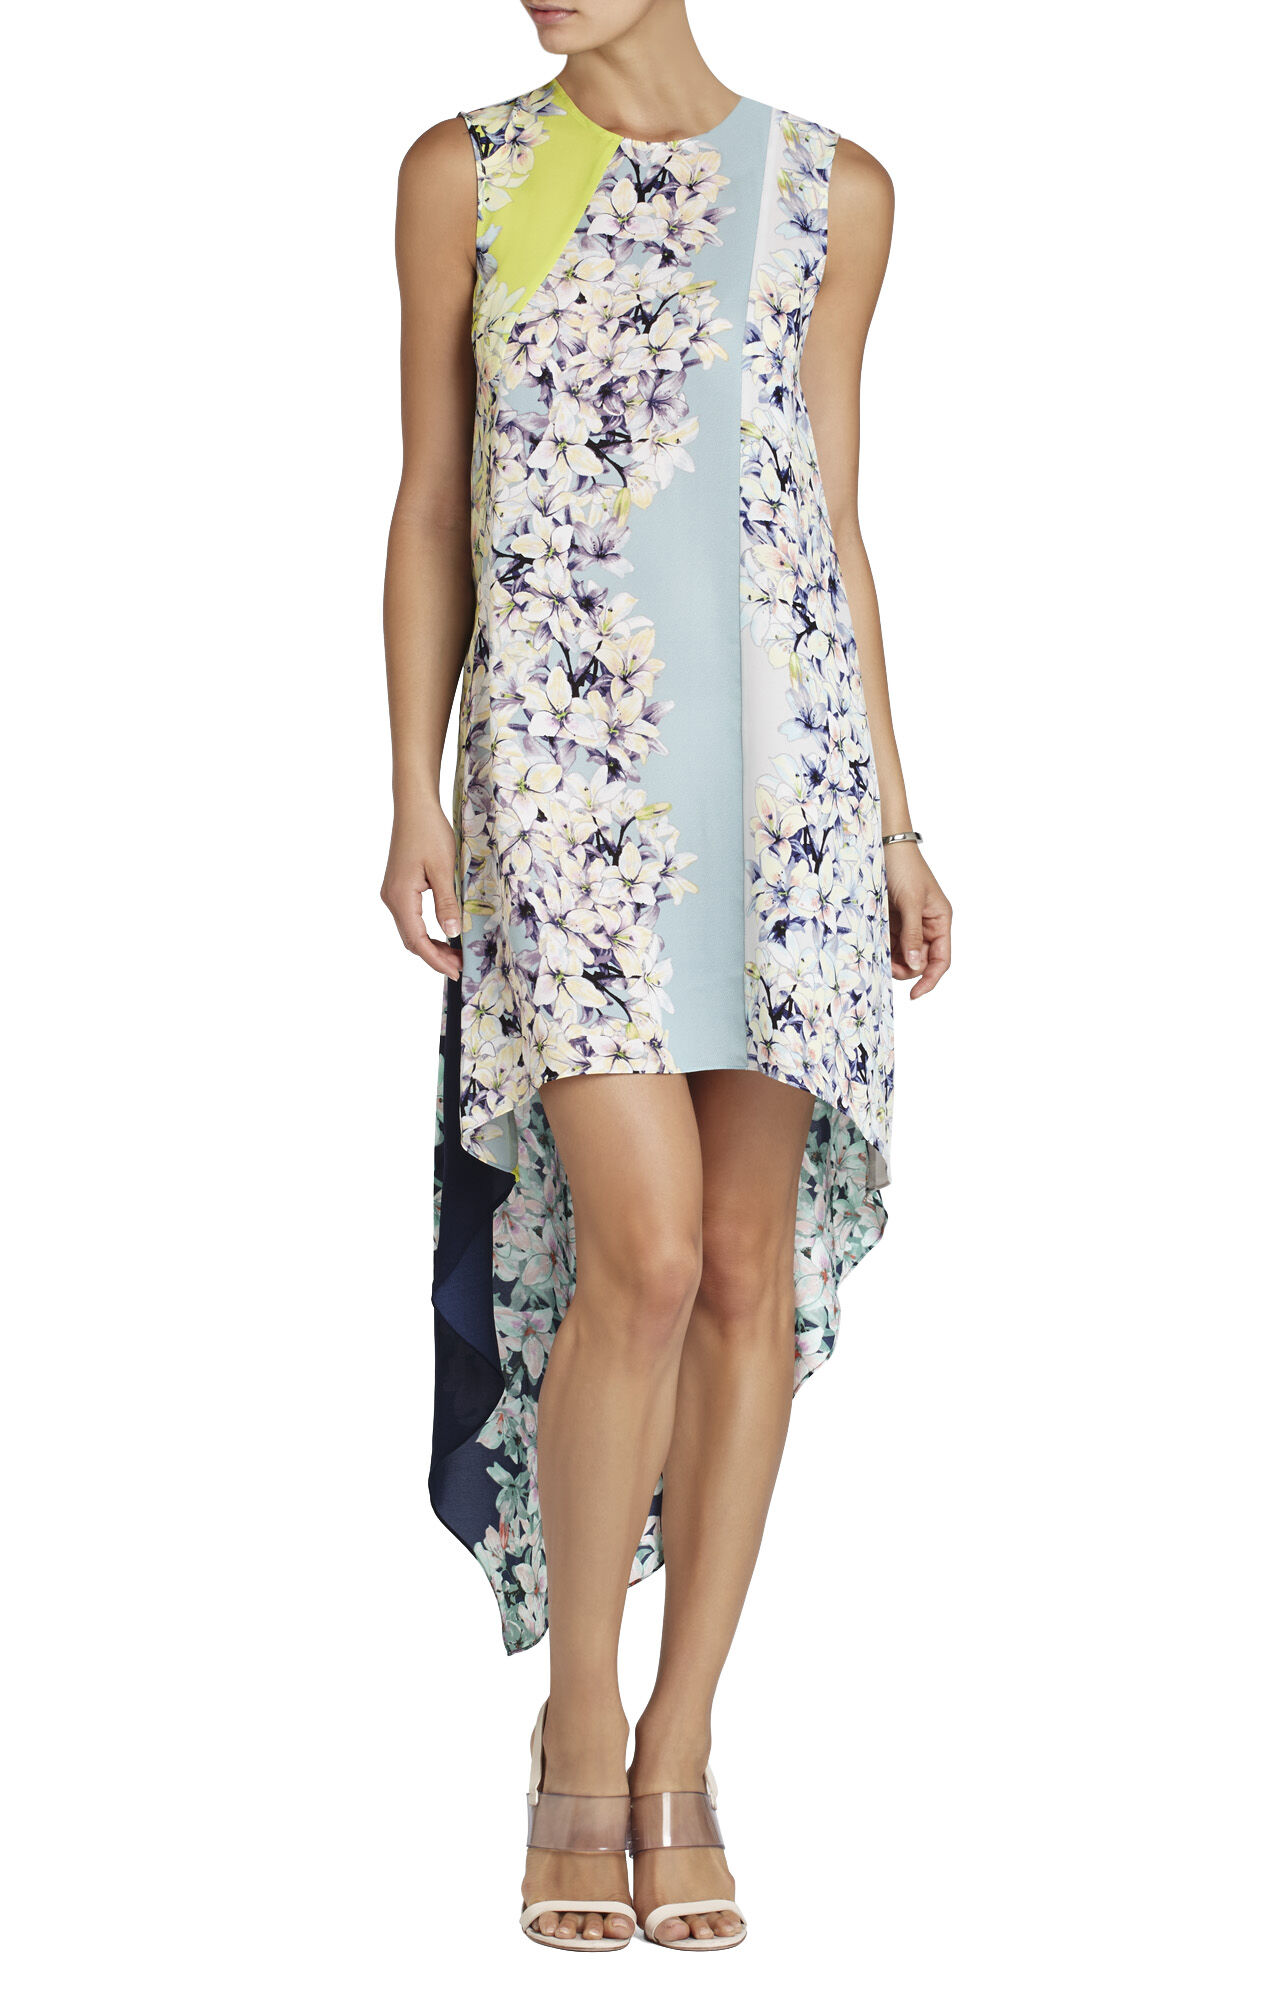 Helene Sleeveless Print-Blocked Dress